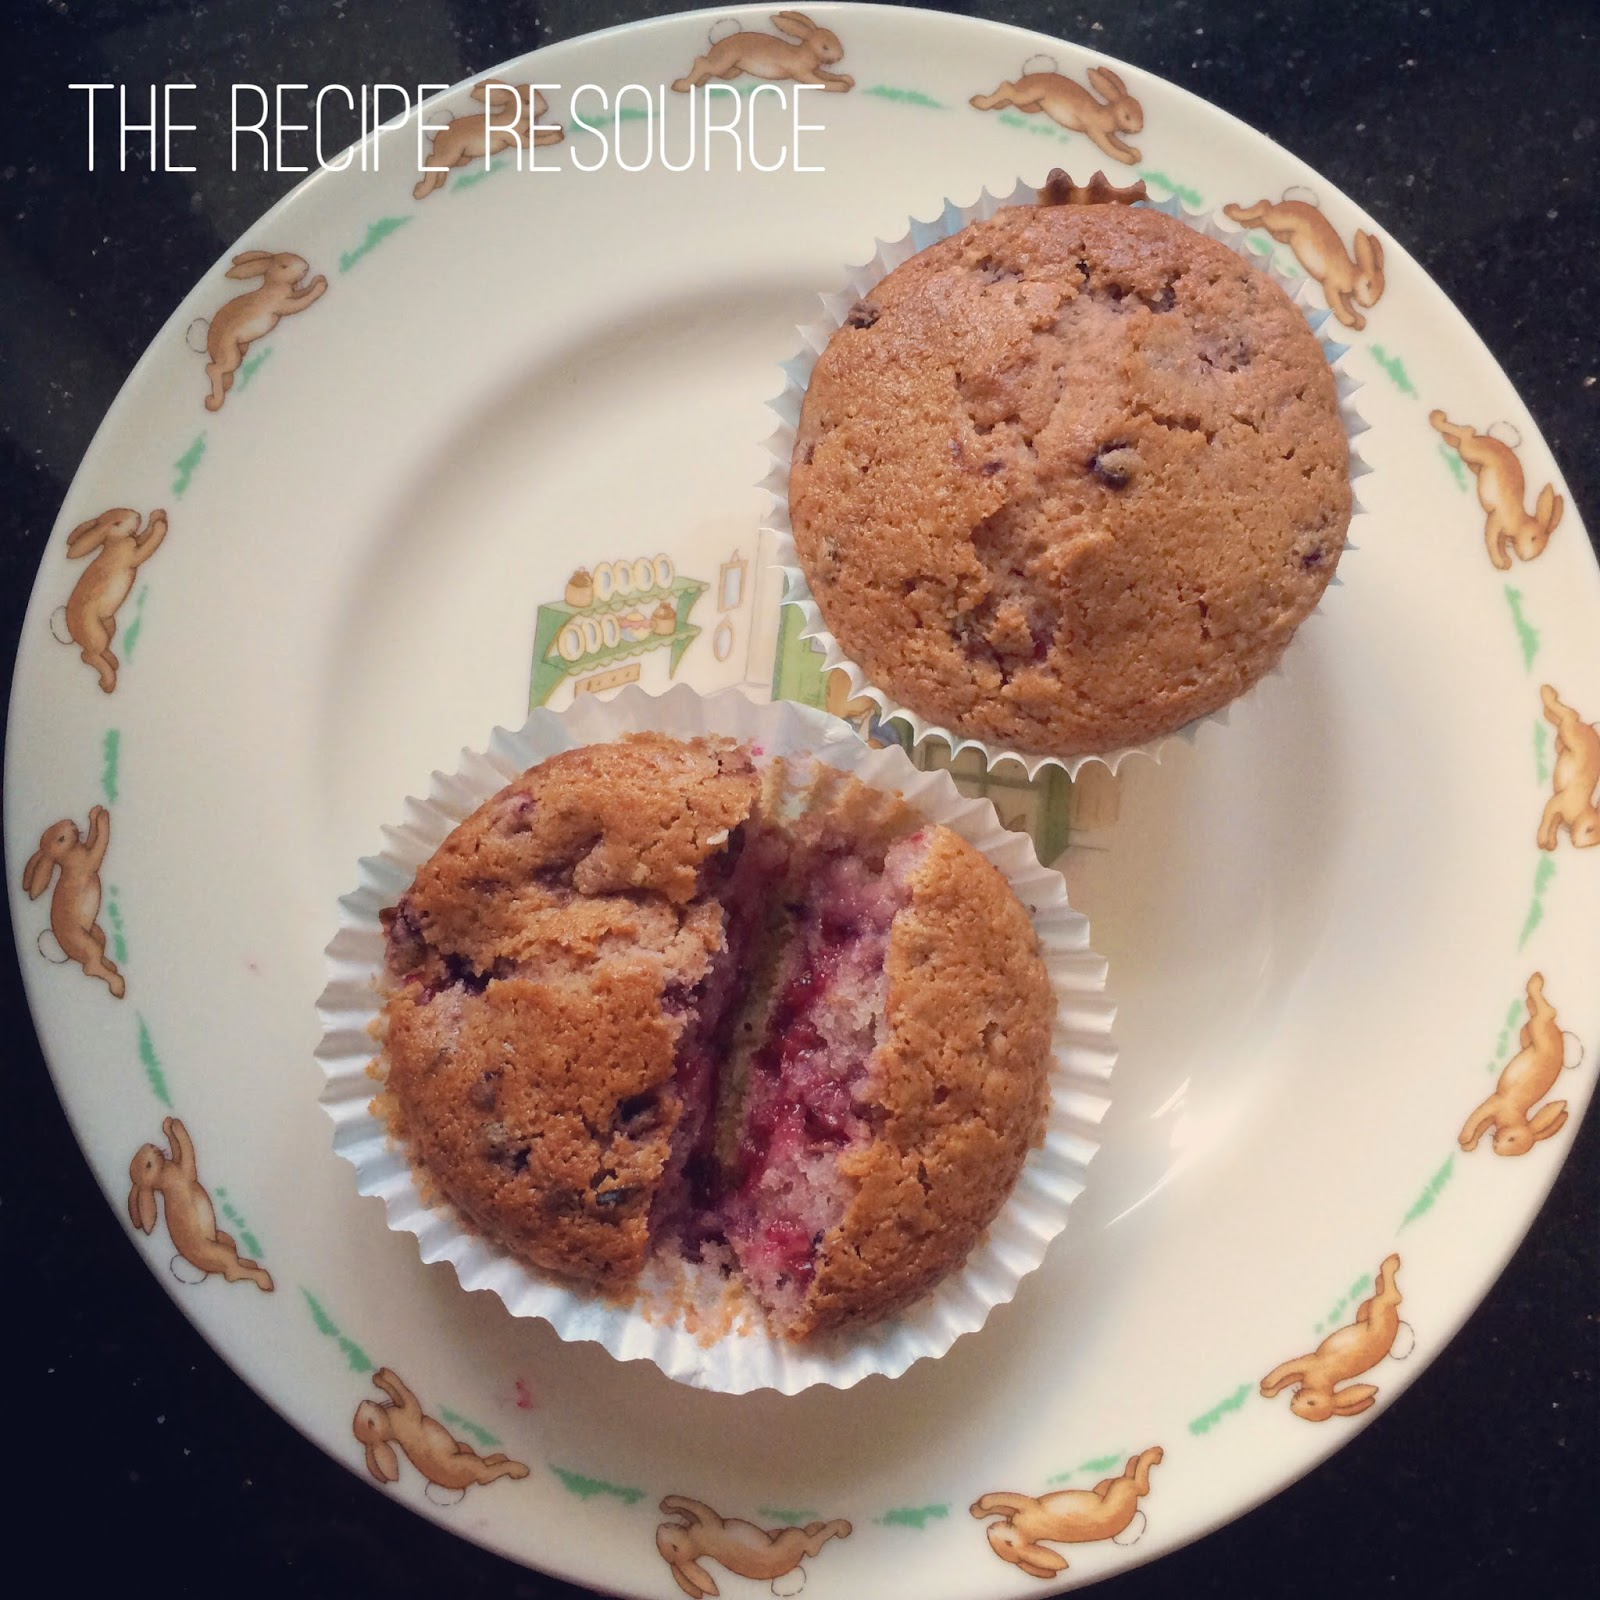 Yet another muffin recipe!